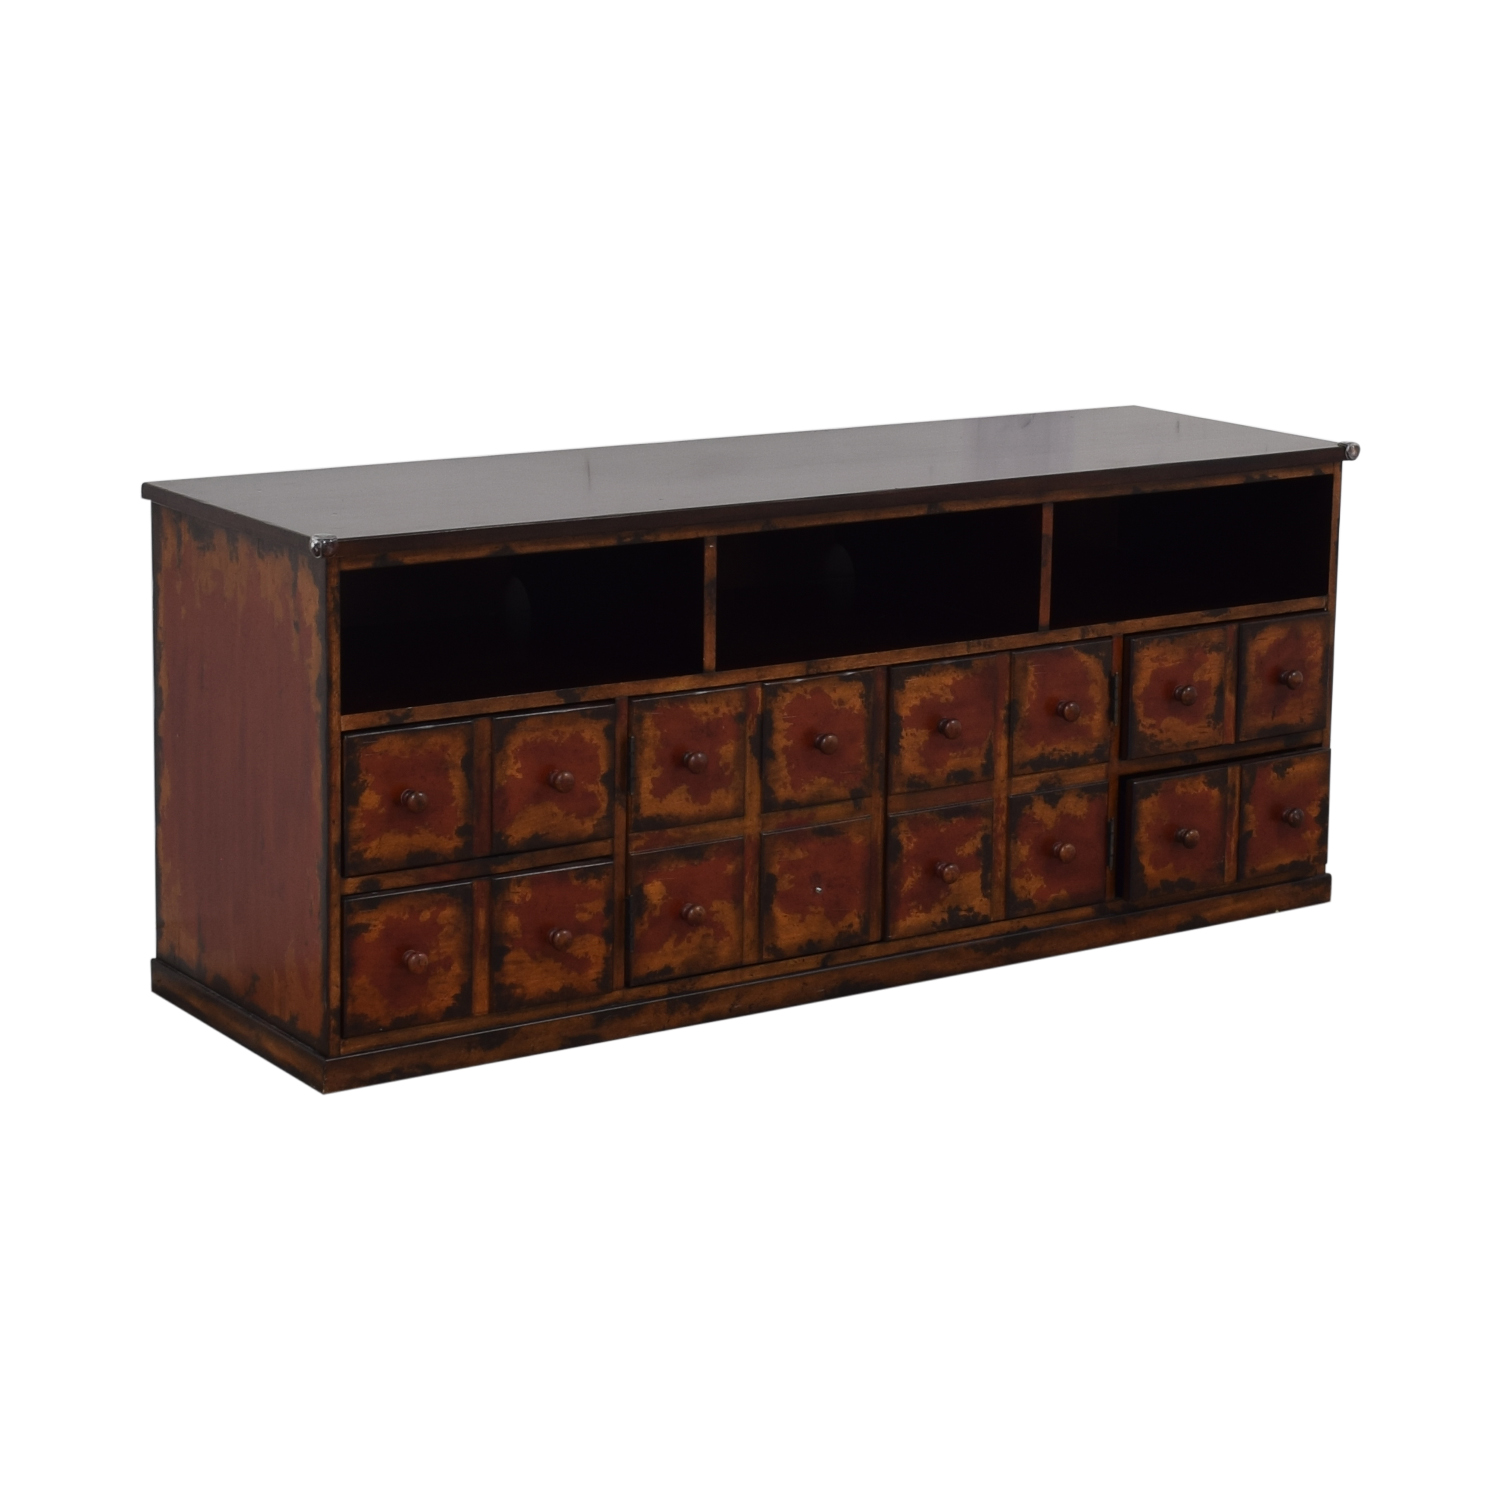 shop Pottery Barn Pottery Barn Entertainment Console online